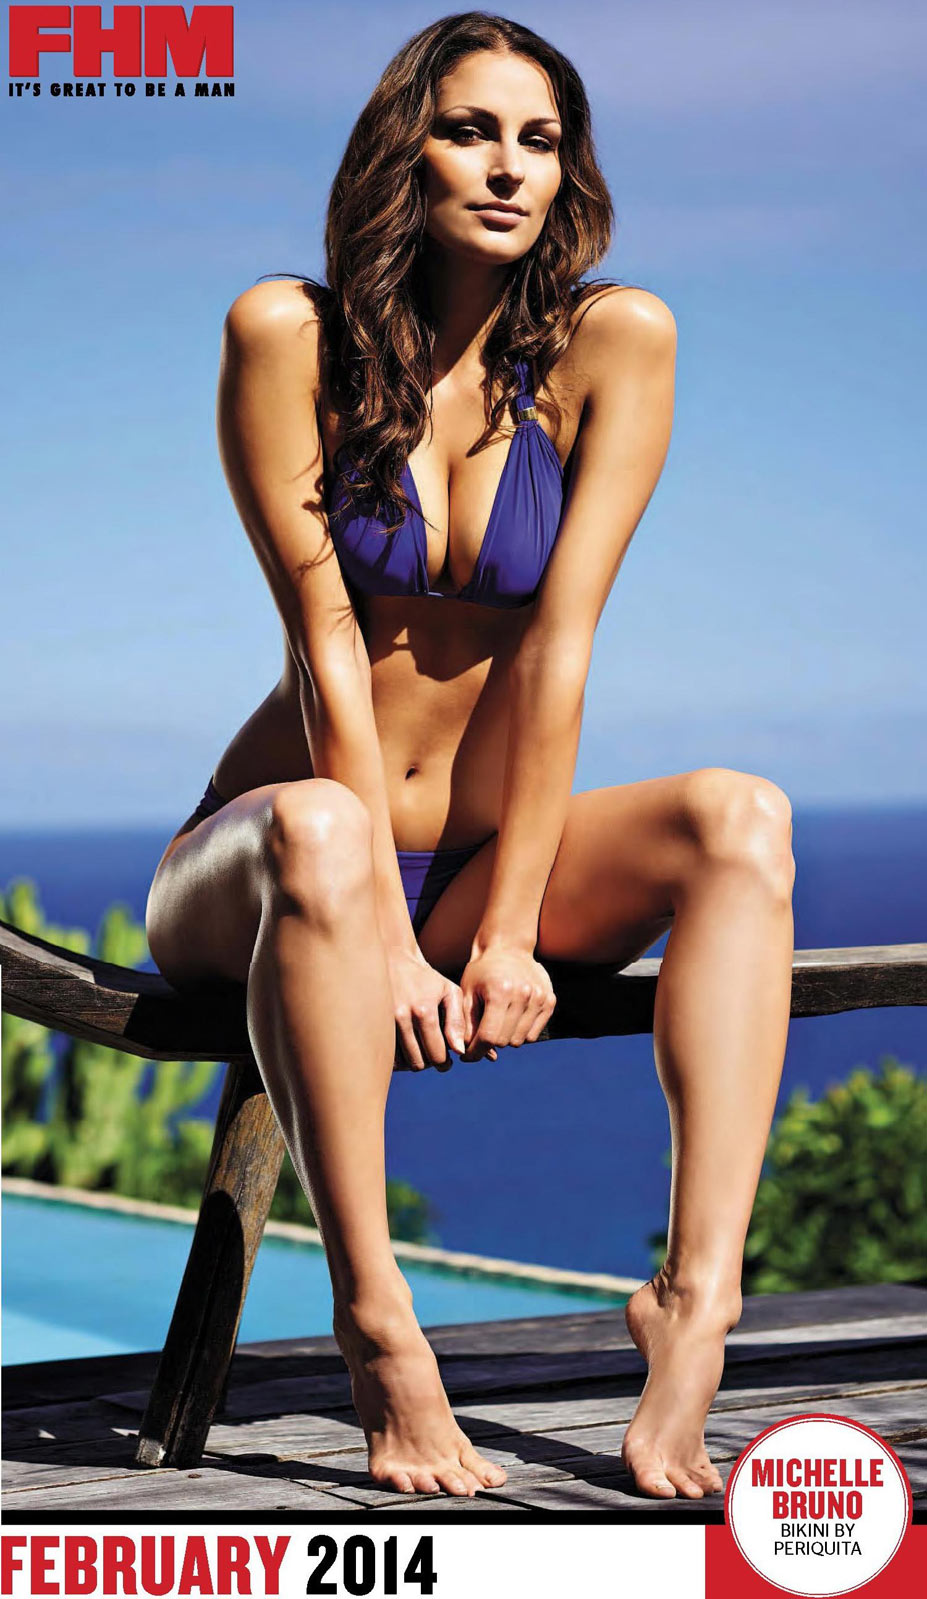 ����������� ������� � ��������� ������� FHM South Africa 2014 - Michelle Bruno